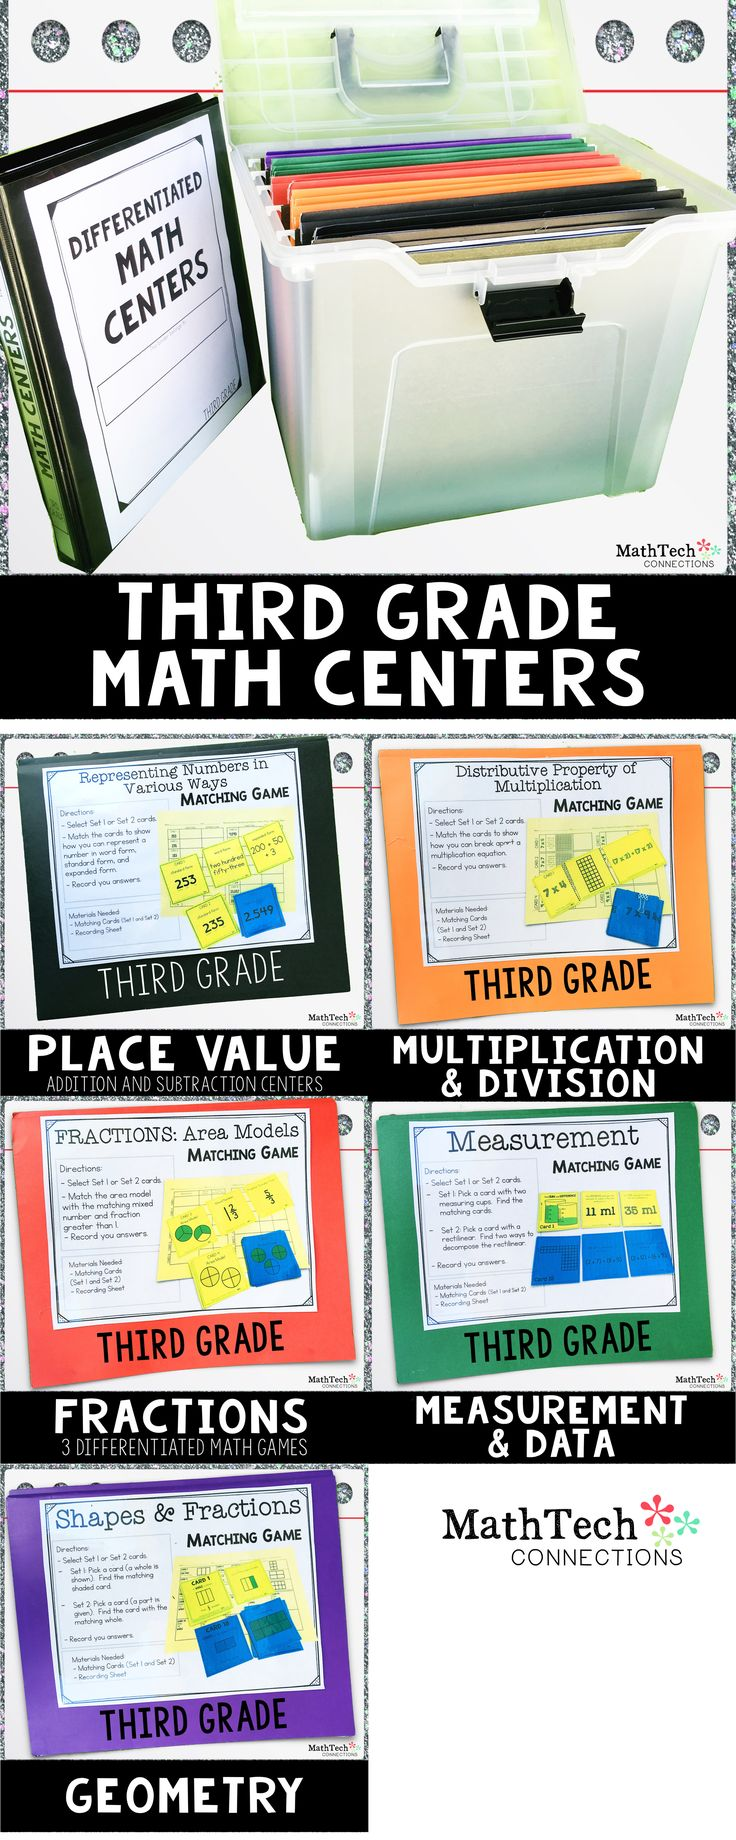 3rd Grade Math Centers for Math Workshop - These 14 differentiated math games are perfect to use during independent math centers. Each games has 2 sets of cards. Set 1 cards have been edited, so struggling students will succeed during math centers.